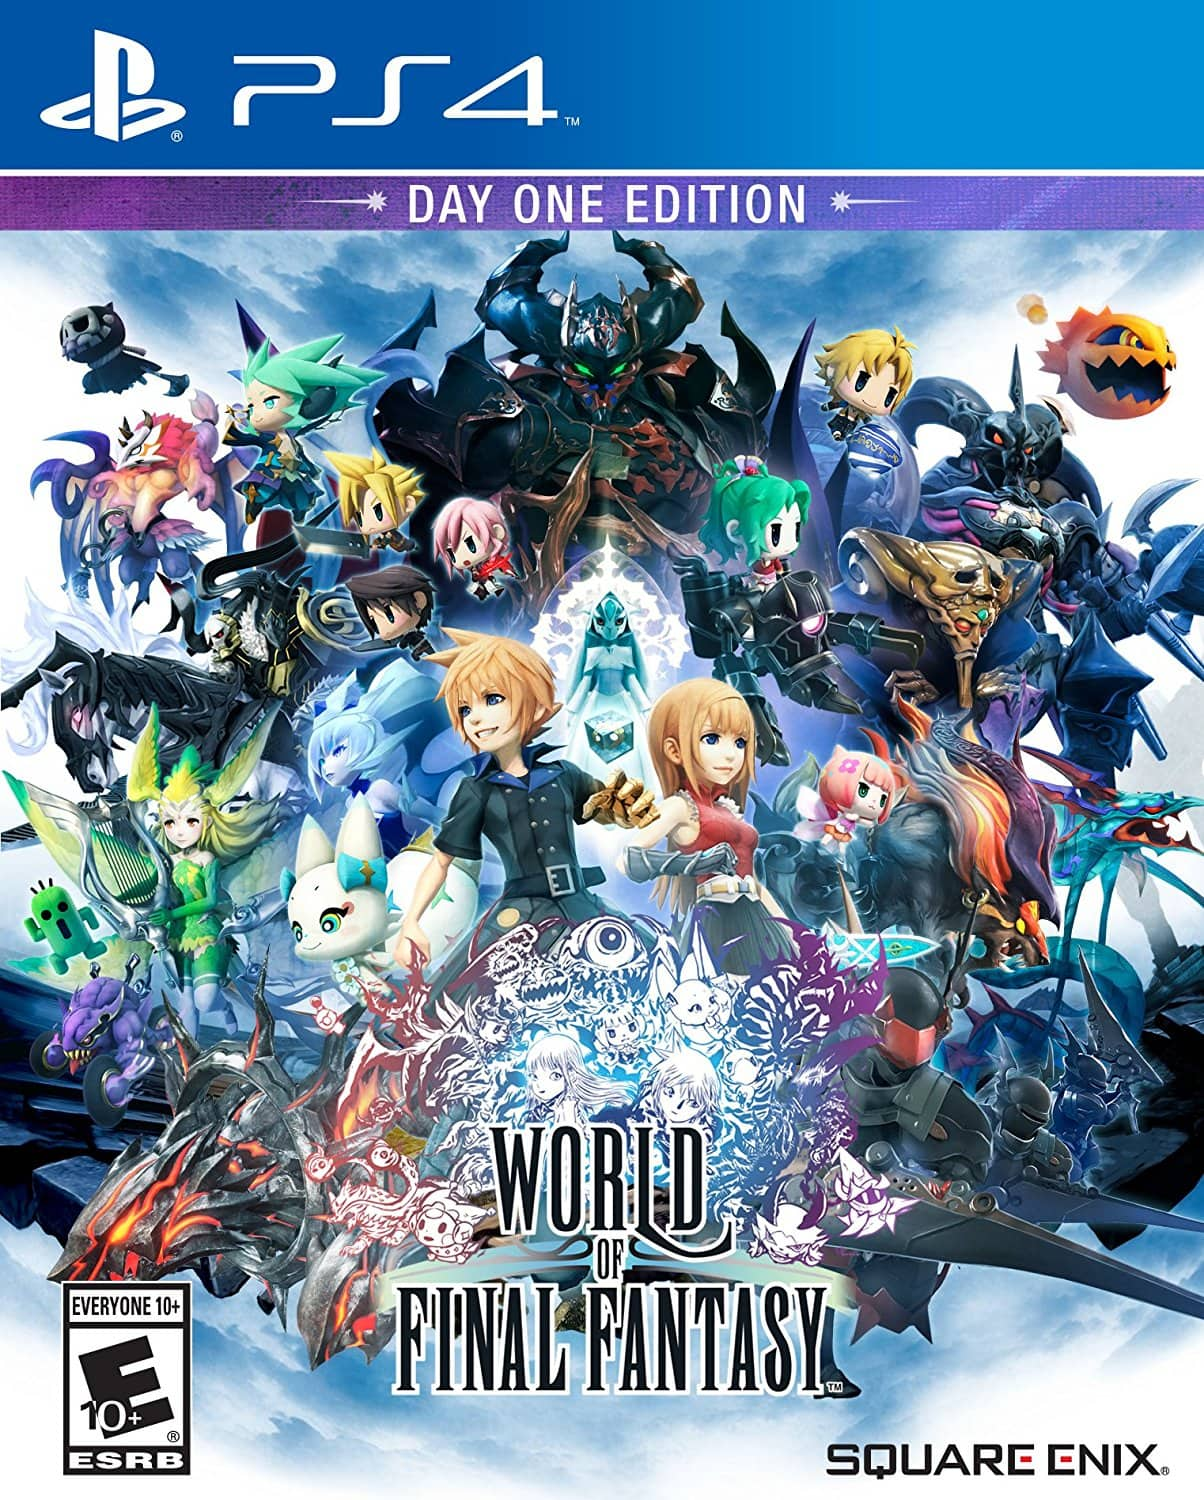 World of Final Fantasy (PS4) - $19.99 with Code on Newegg, $19.99 at GameStop